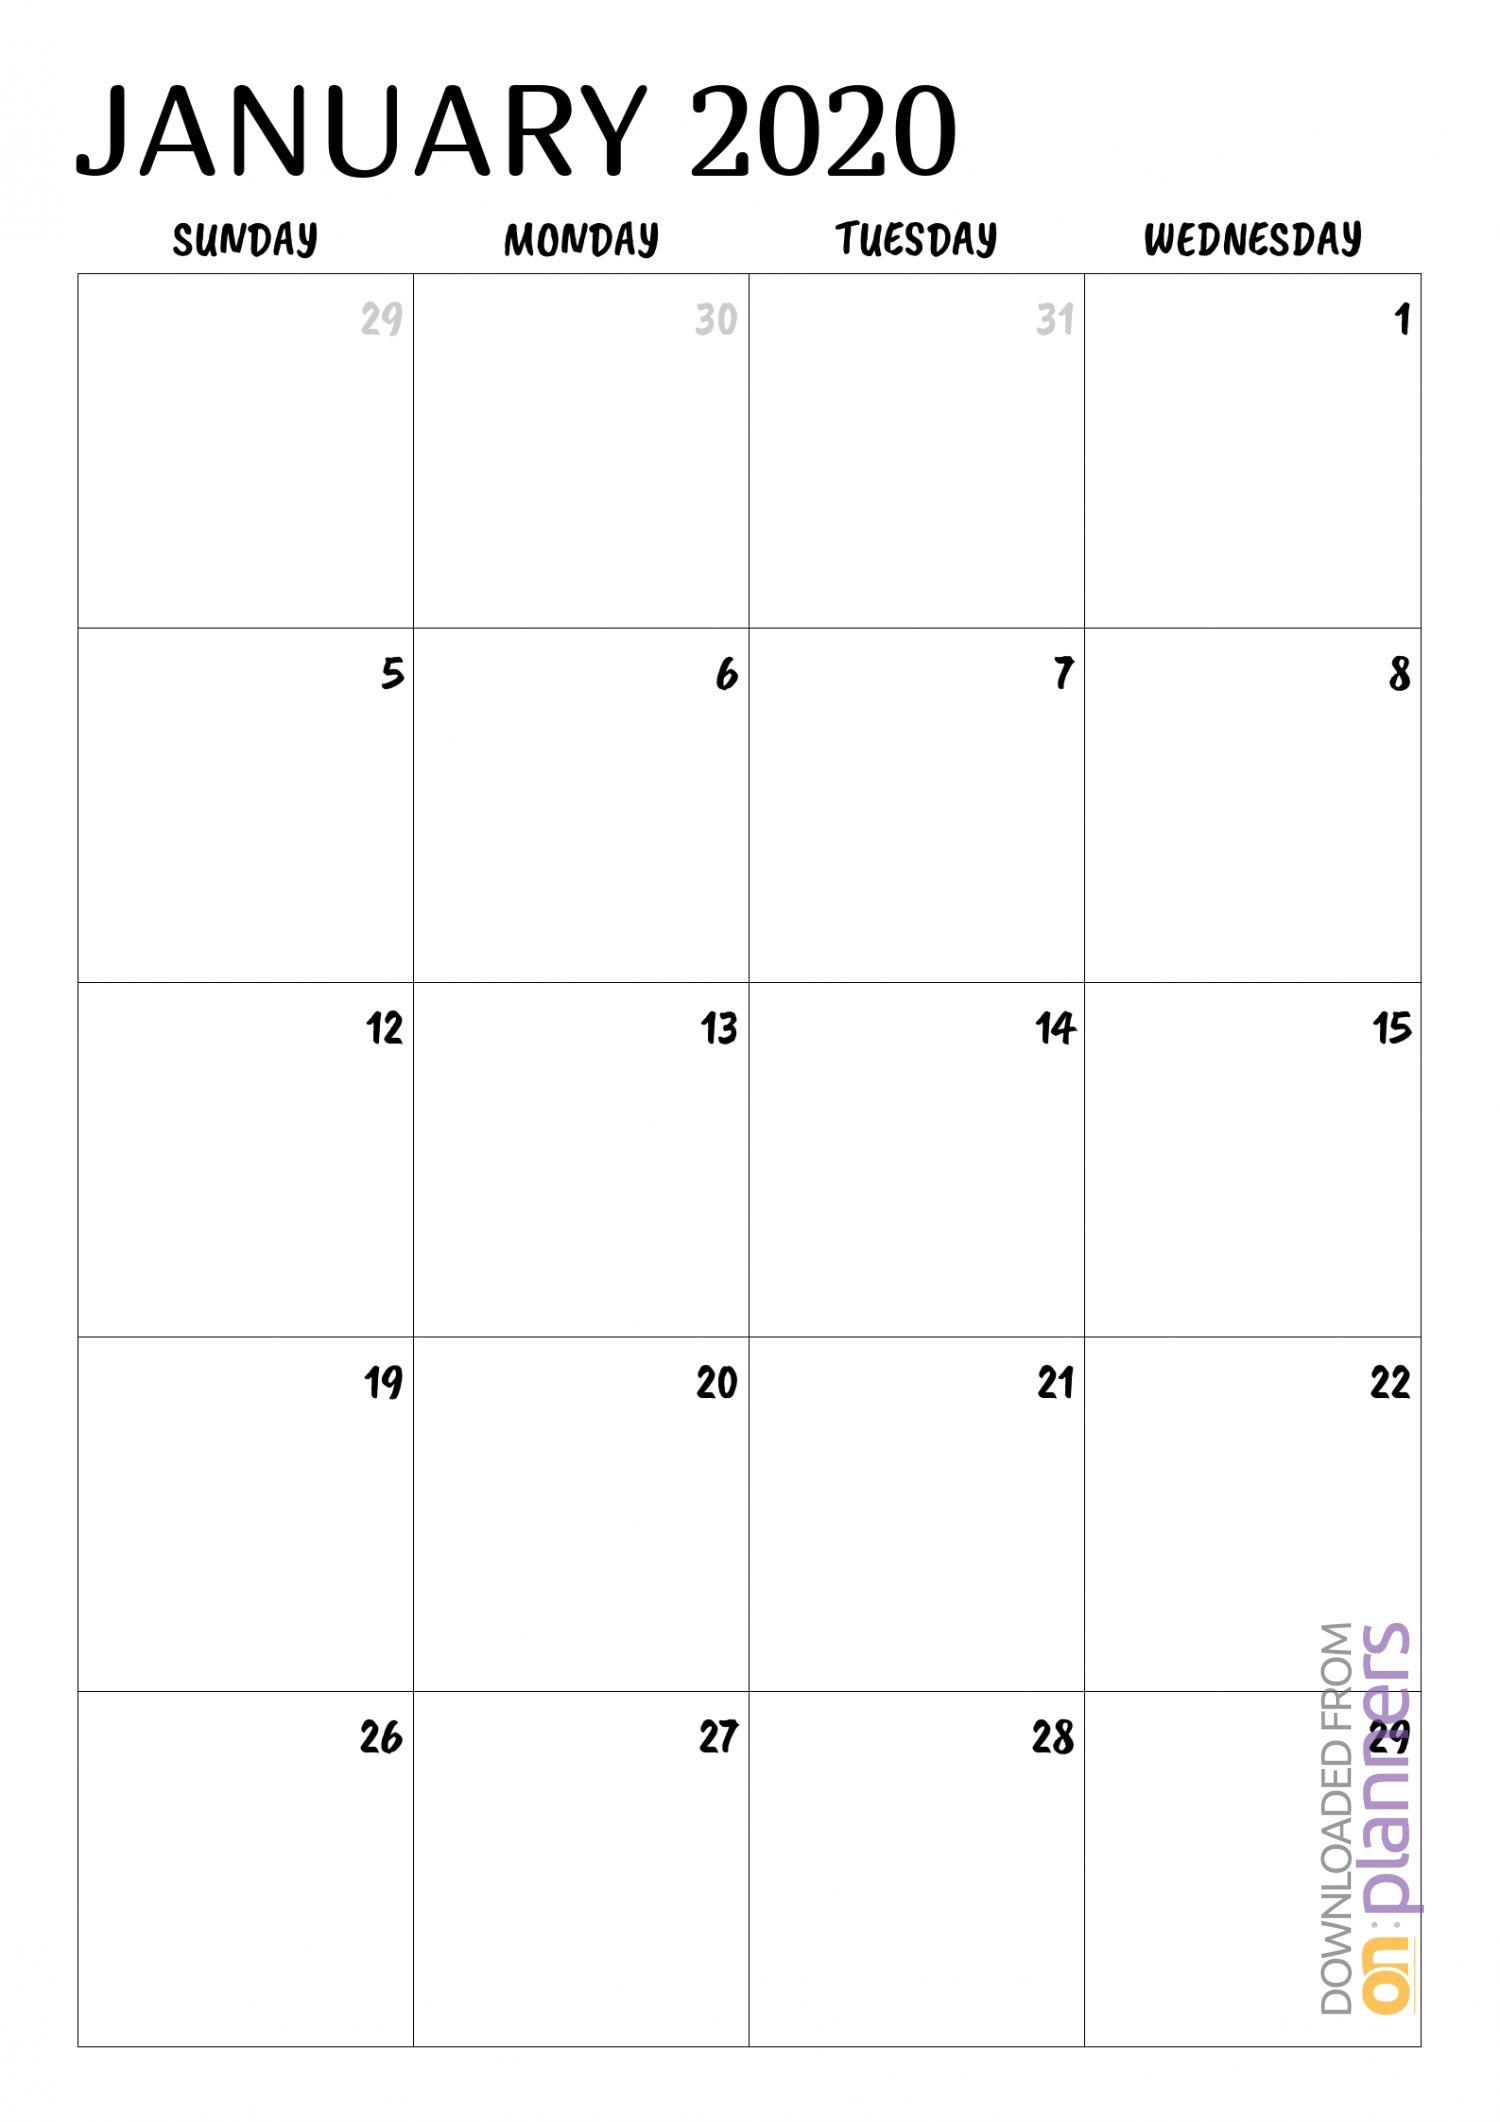 Download Printable Minimal Monthly Calendar Pdf intended for Printable Fillable 2020 Calandars Monthly At A Glance